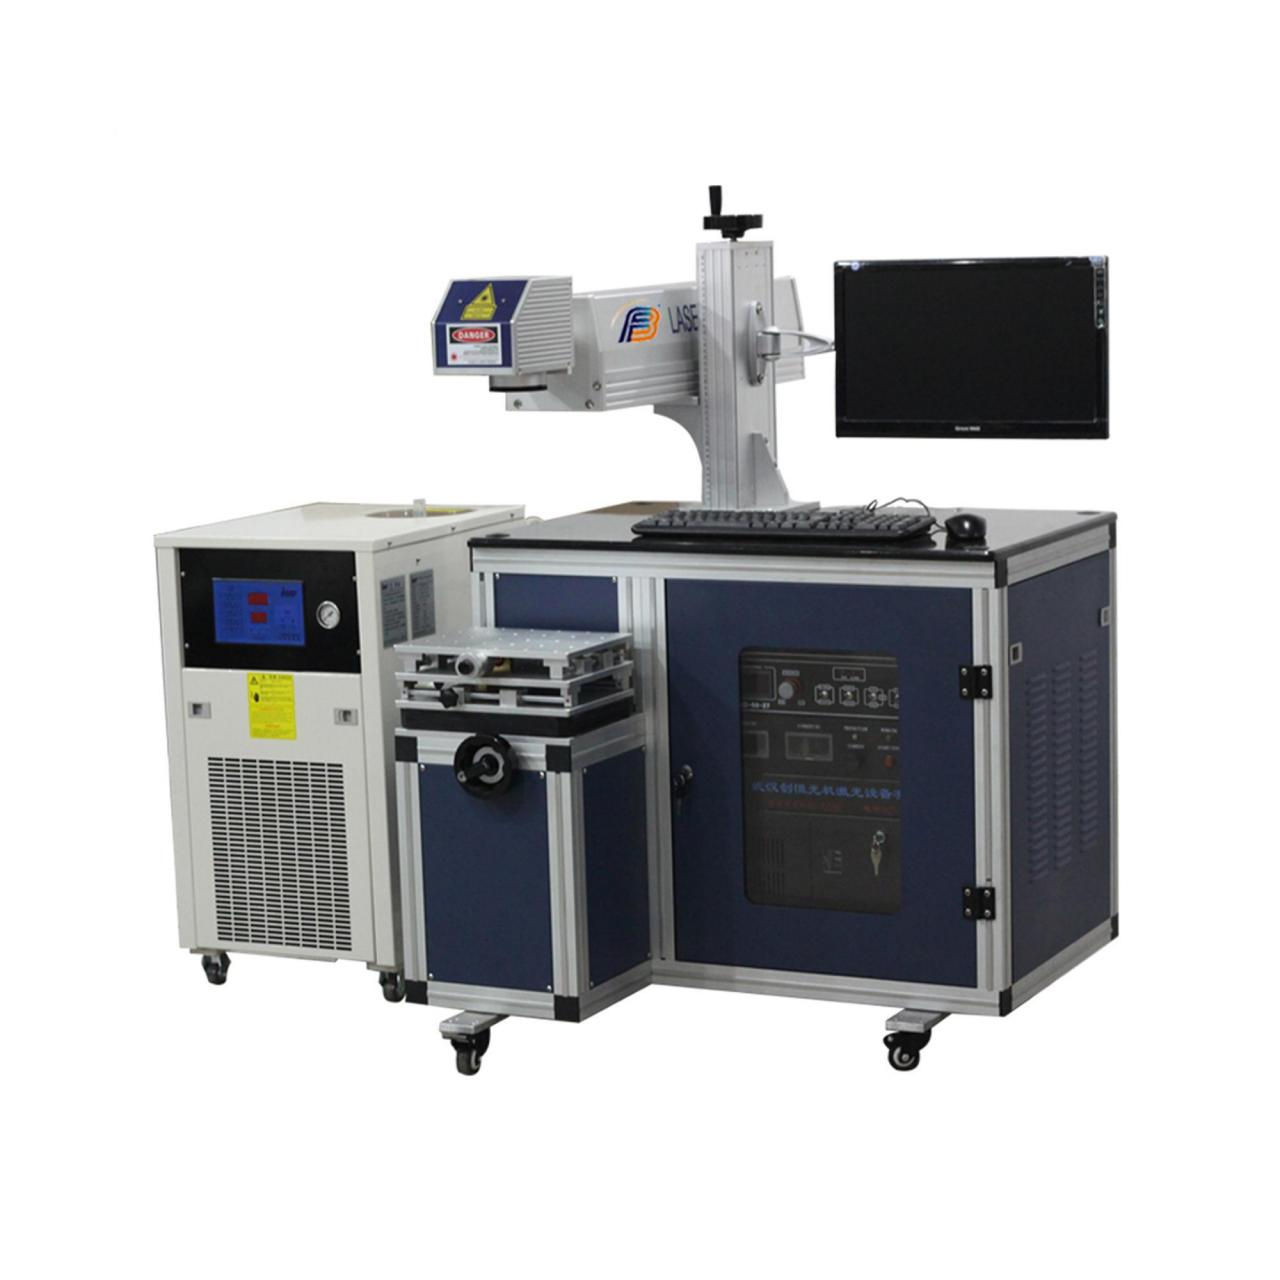 Laser marking machine Semiconductor laser marking machine